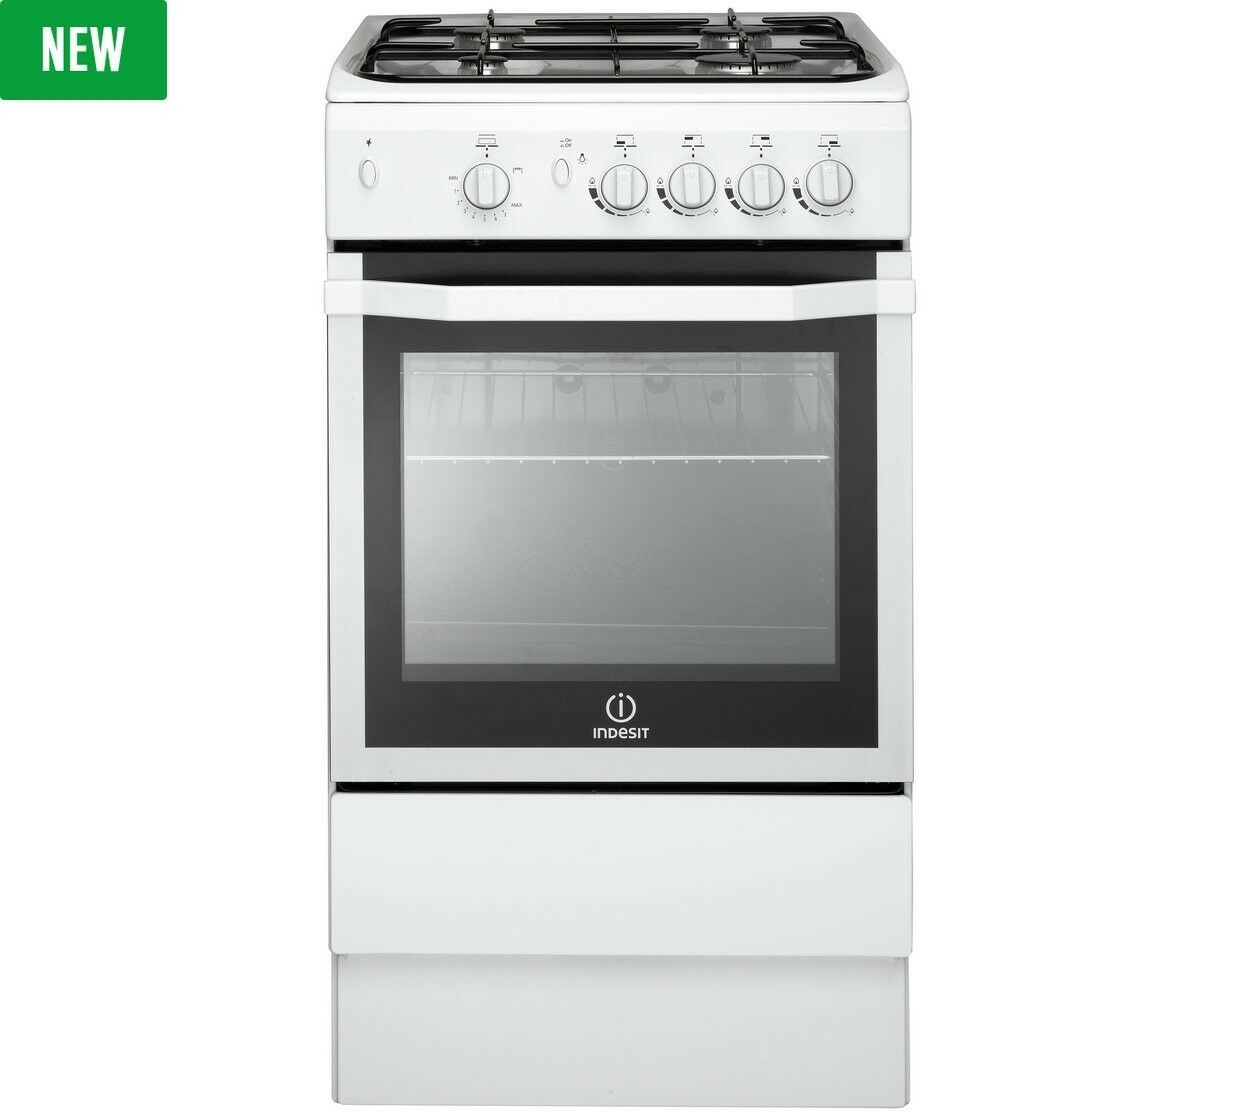 indesit i5ggw free standing 50cm double gas cooker white. Black Bedroom Furniture Sets. Home Design Ideas